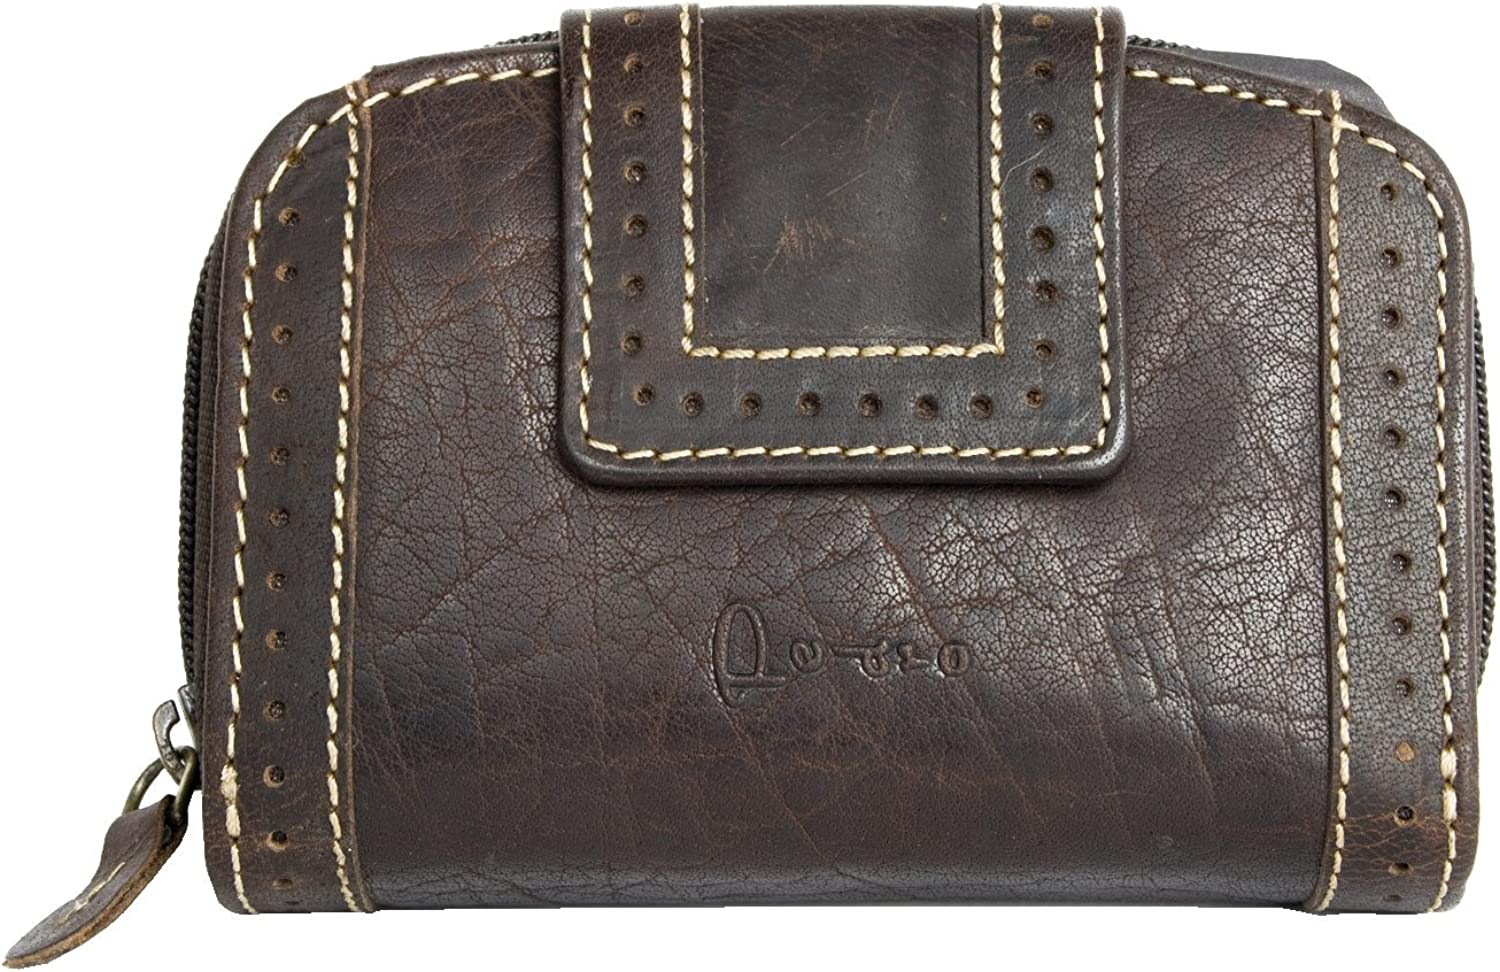 Dark Brown Medium Sized Strong Leather Wallet Pedro Whole Made of Natural Genuine Leather